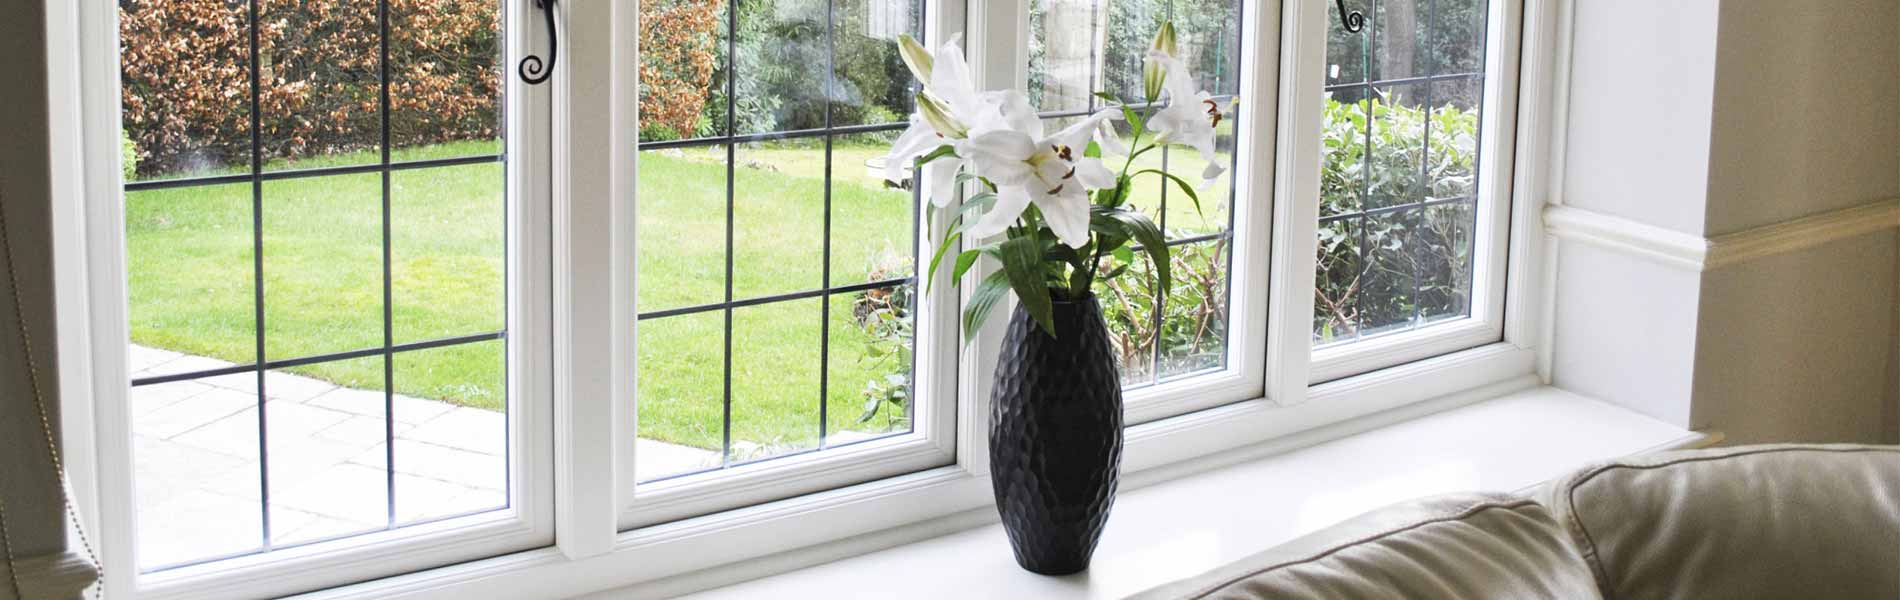 Olivair Home Improvements | Windows